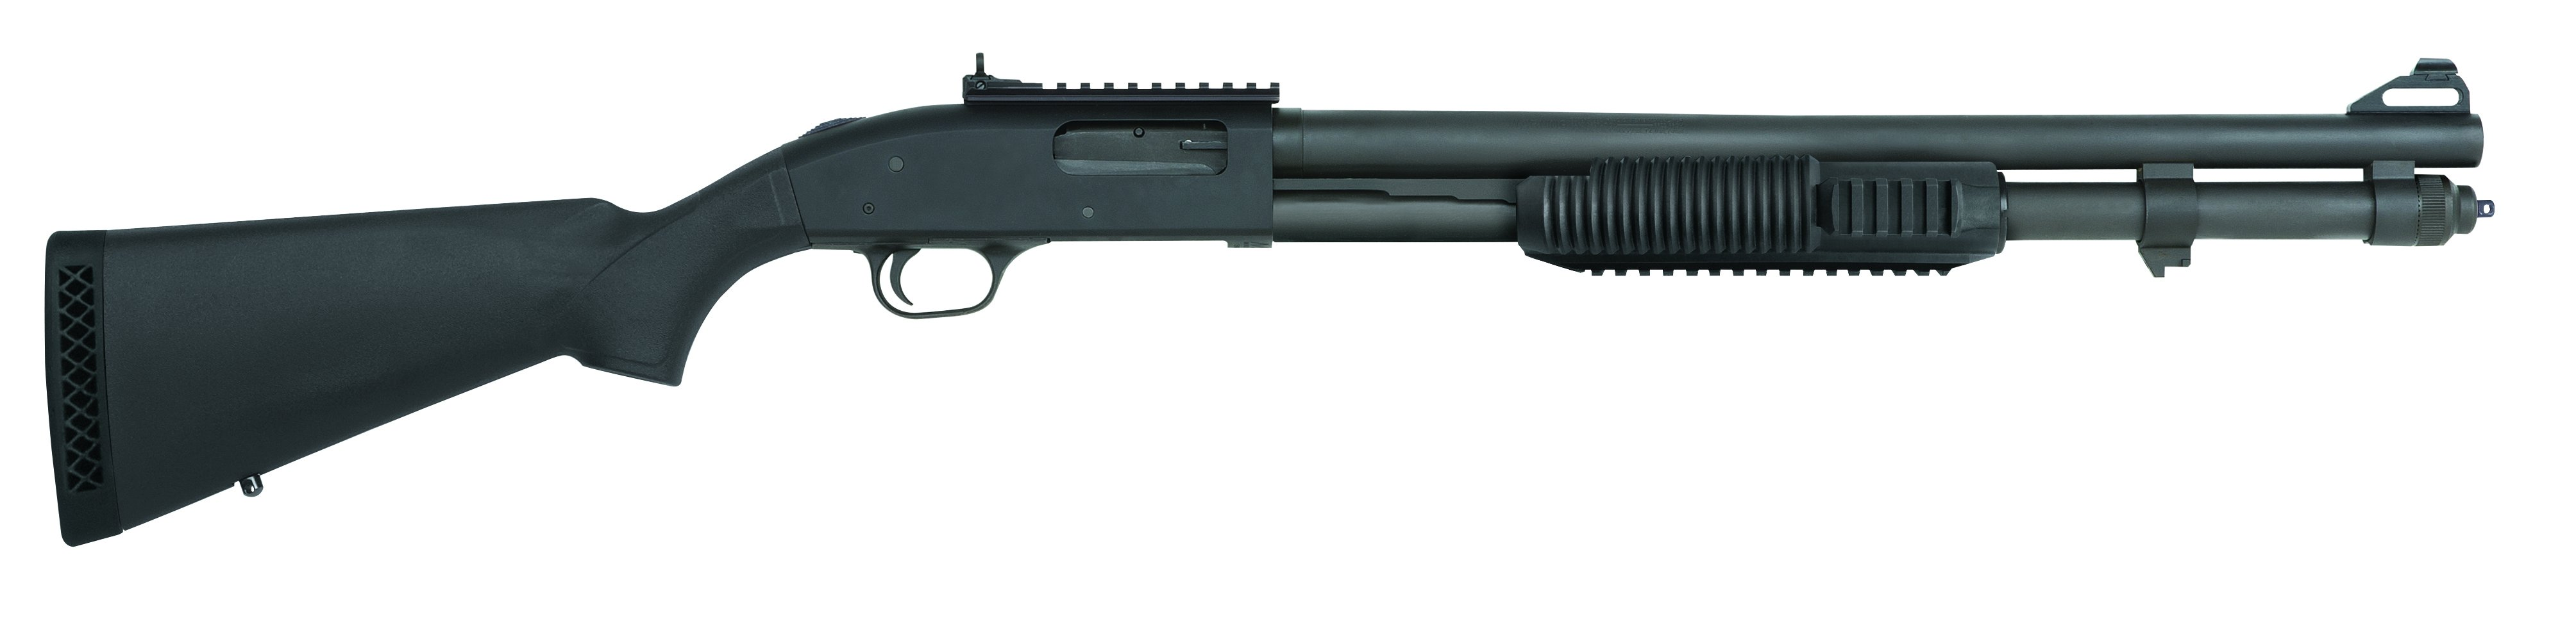 MOSSBERG 590A1 XS SECURITY 12GA SYN 20